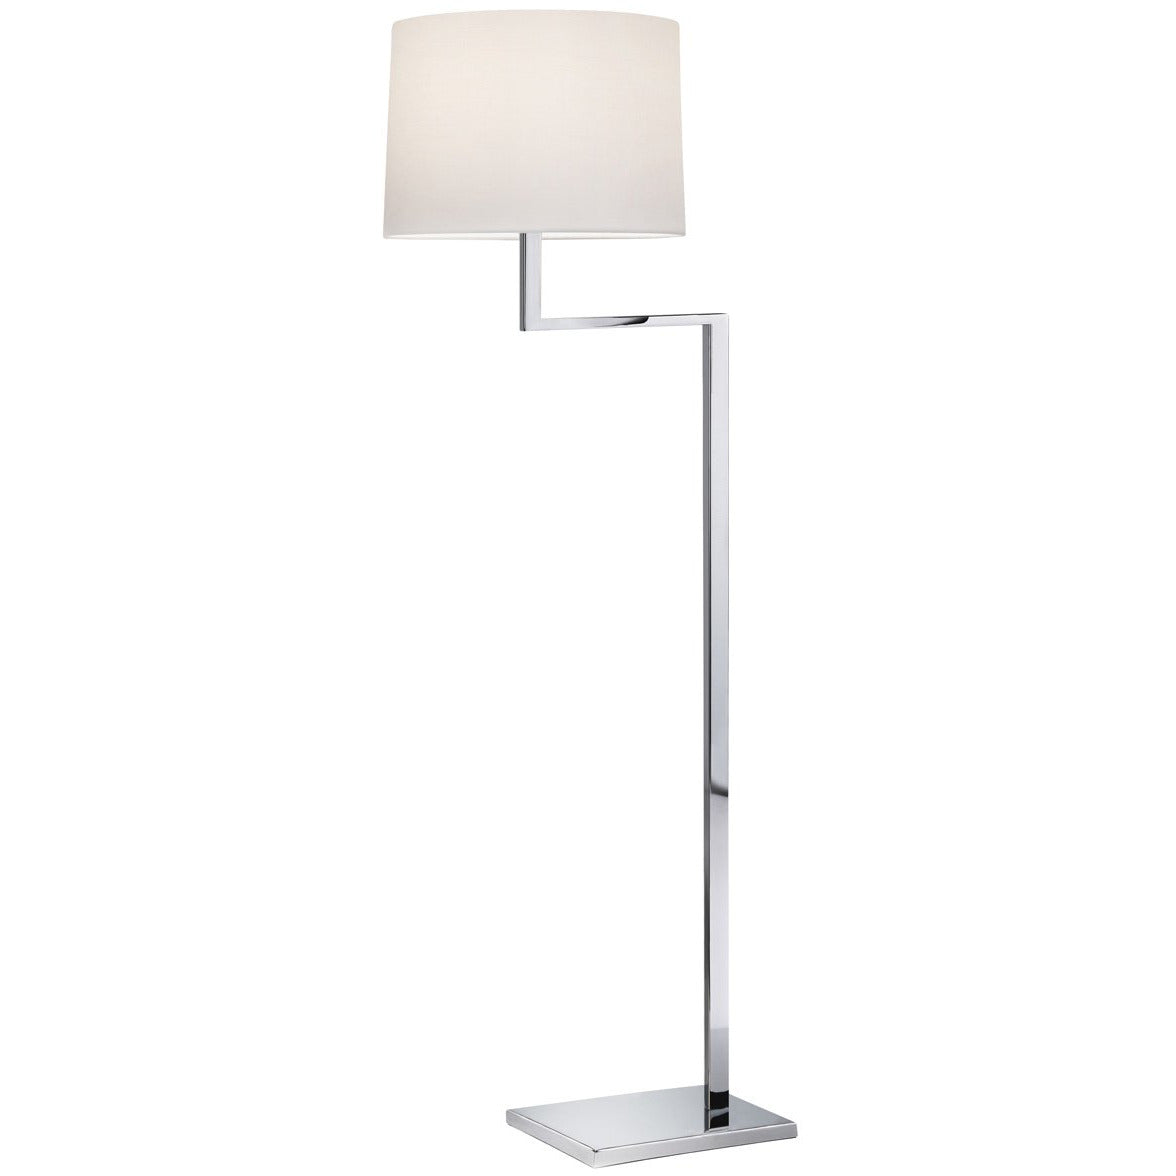 Sonneman - A Way of Light - 6426.01 - One Light Floor Lamp - Thick Thin - Polished Chrome